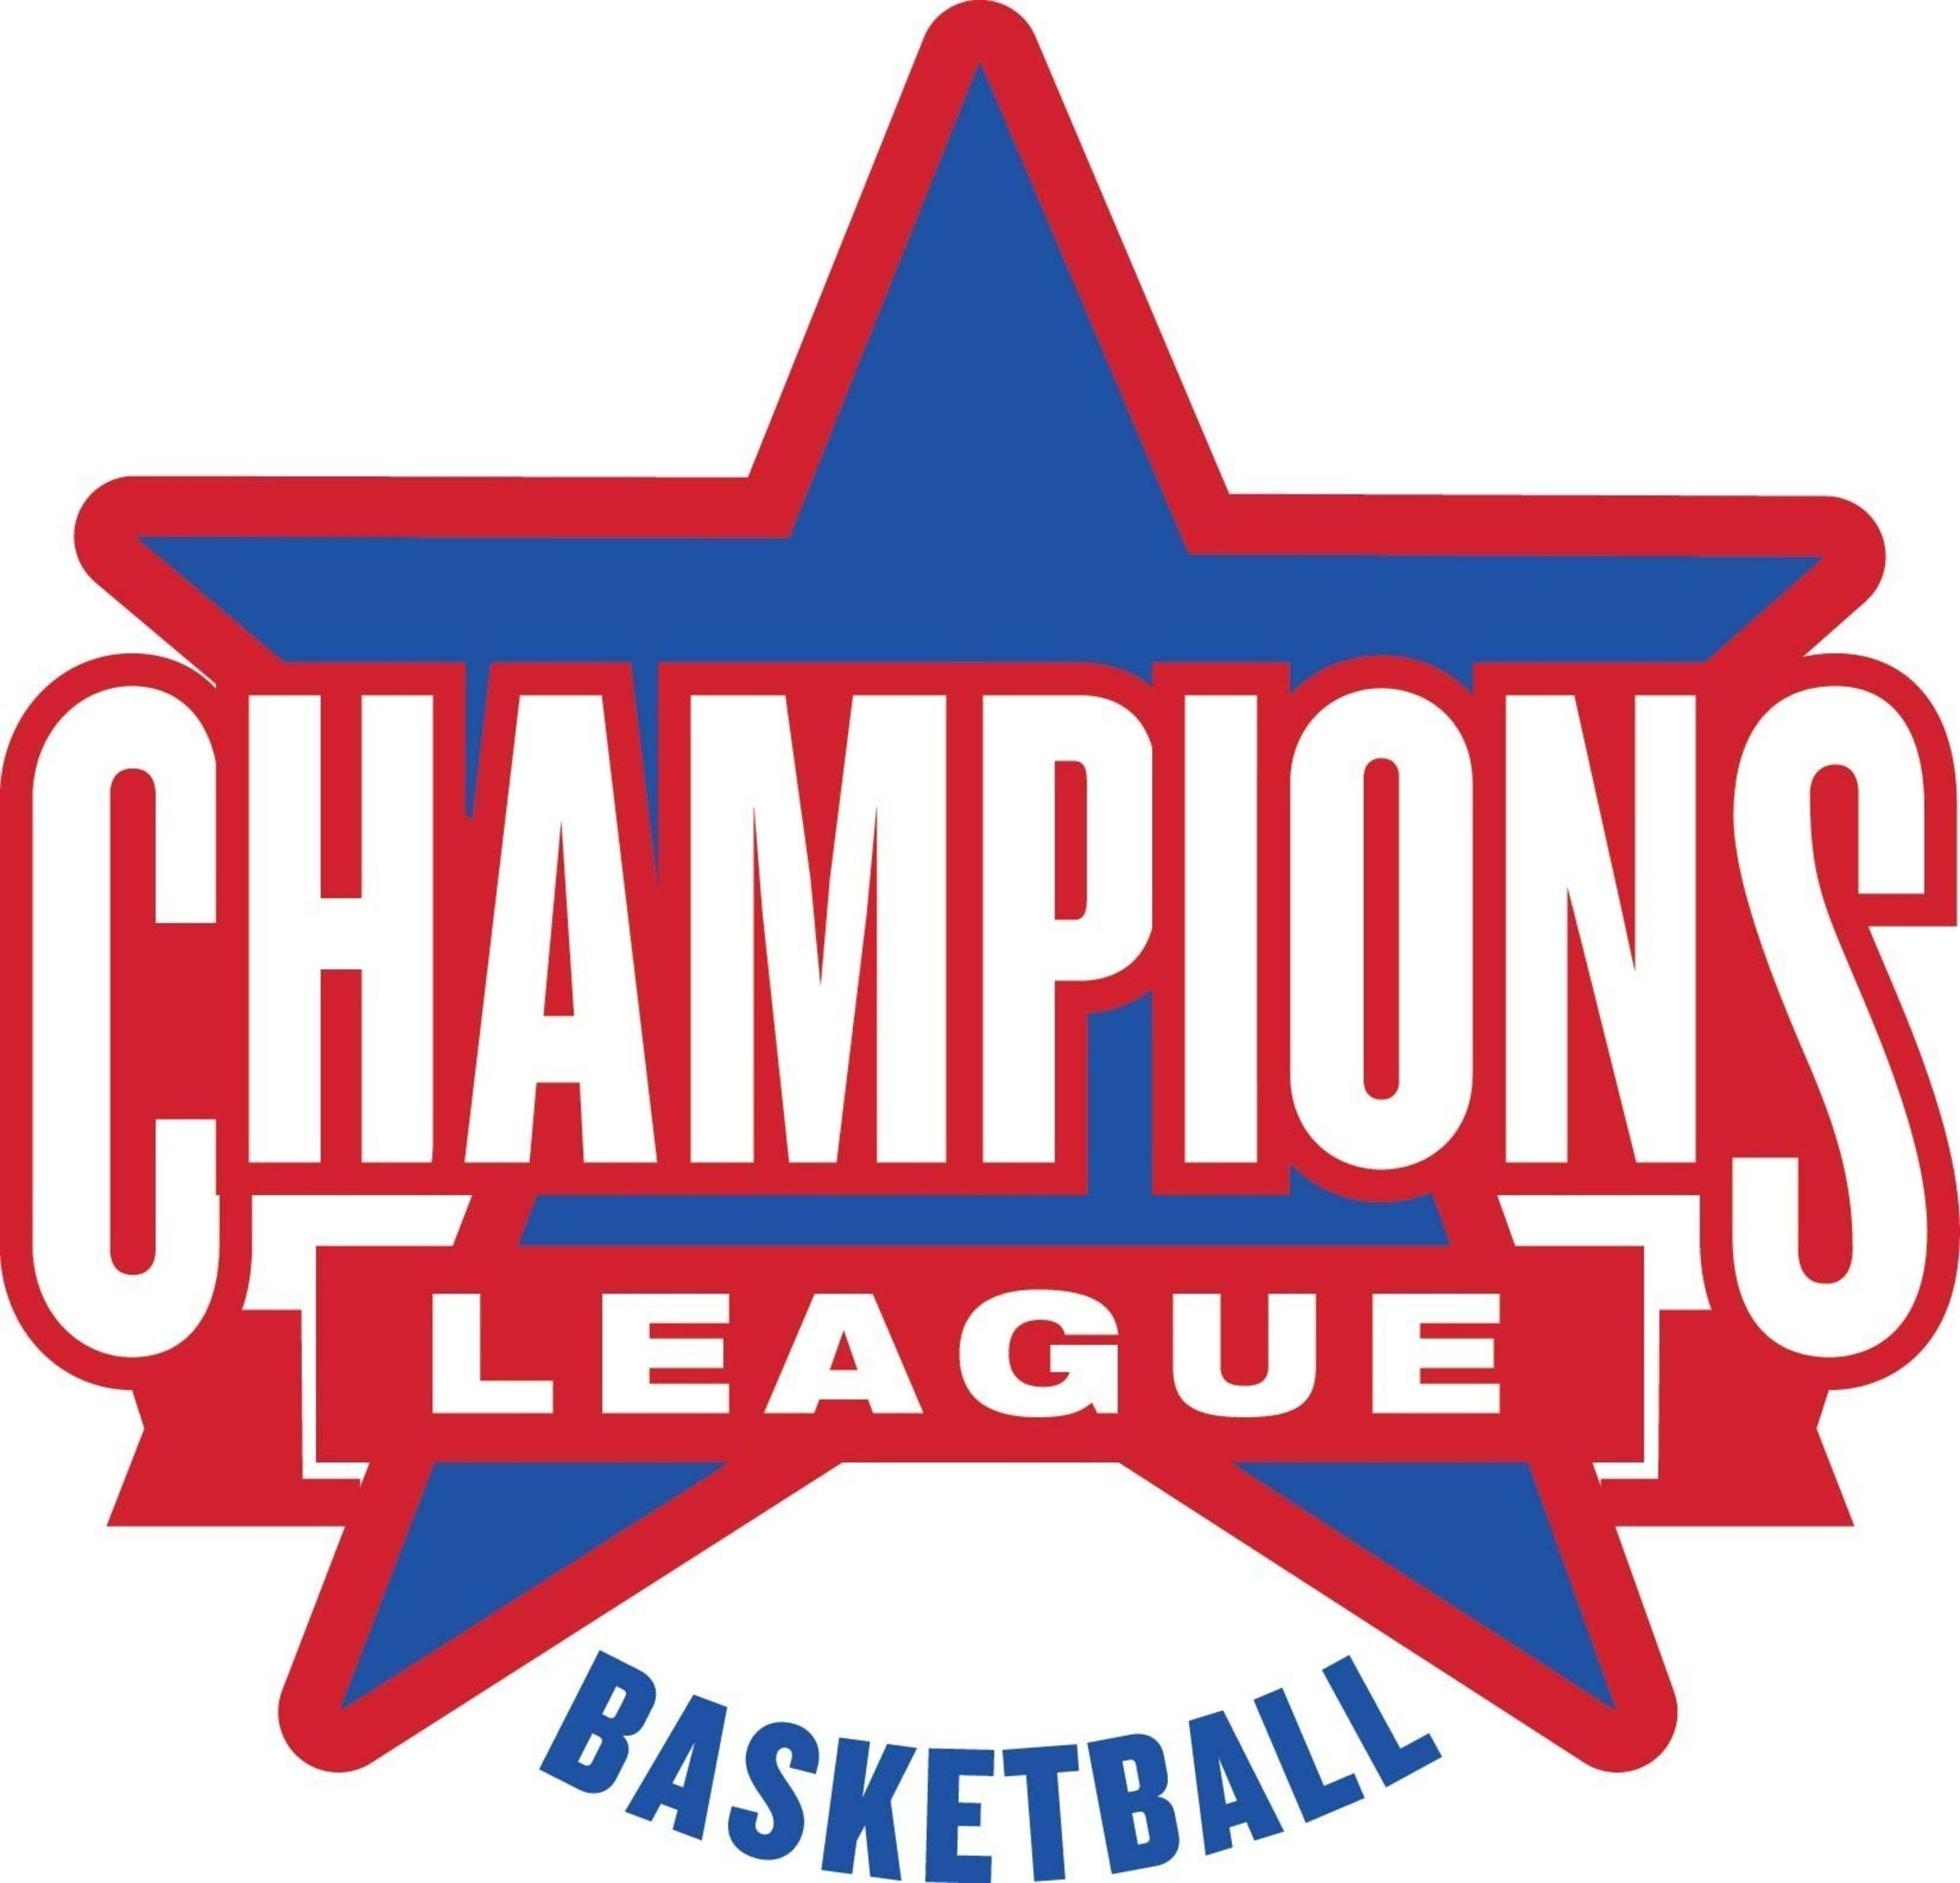 Champions Basketball League Announces New York Team Name And.